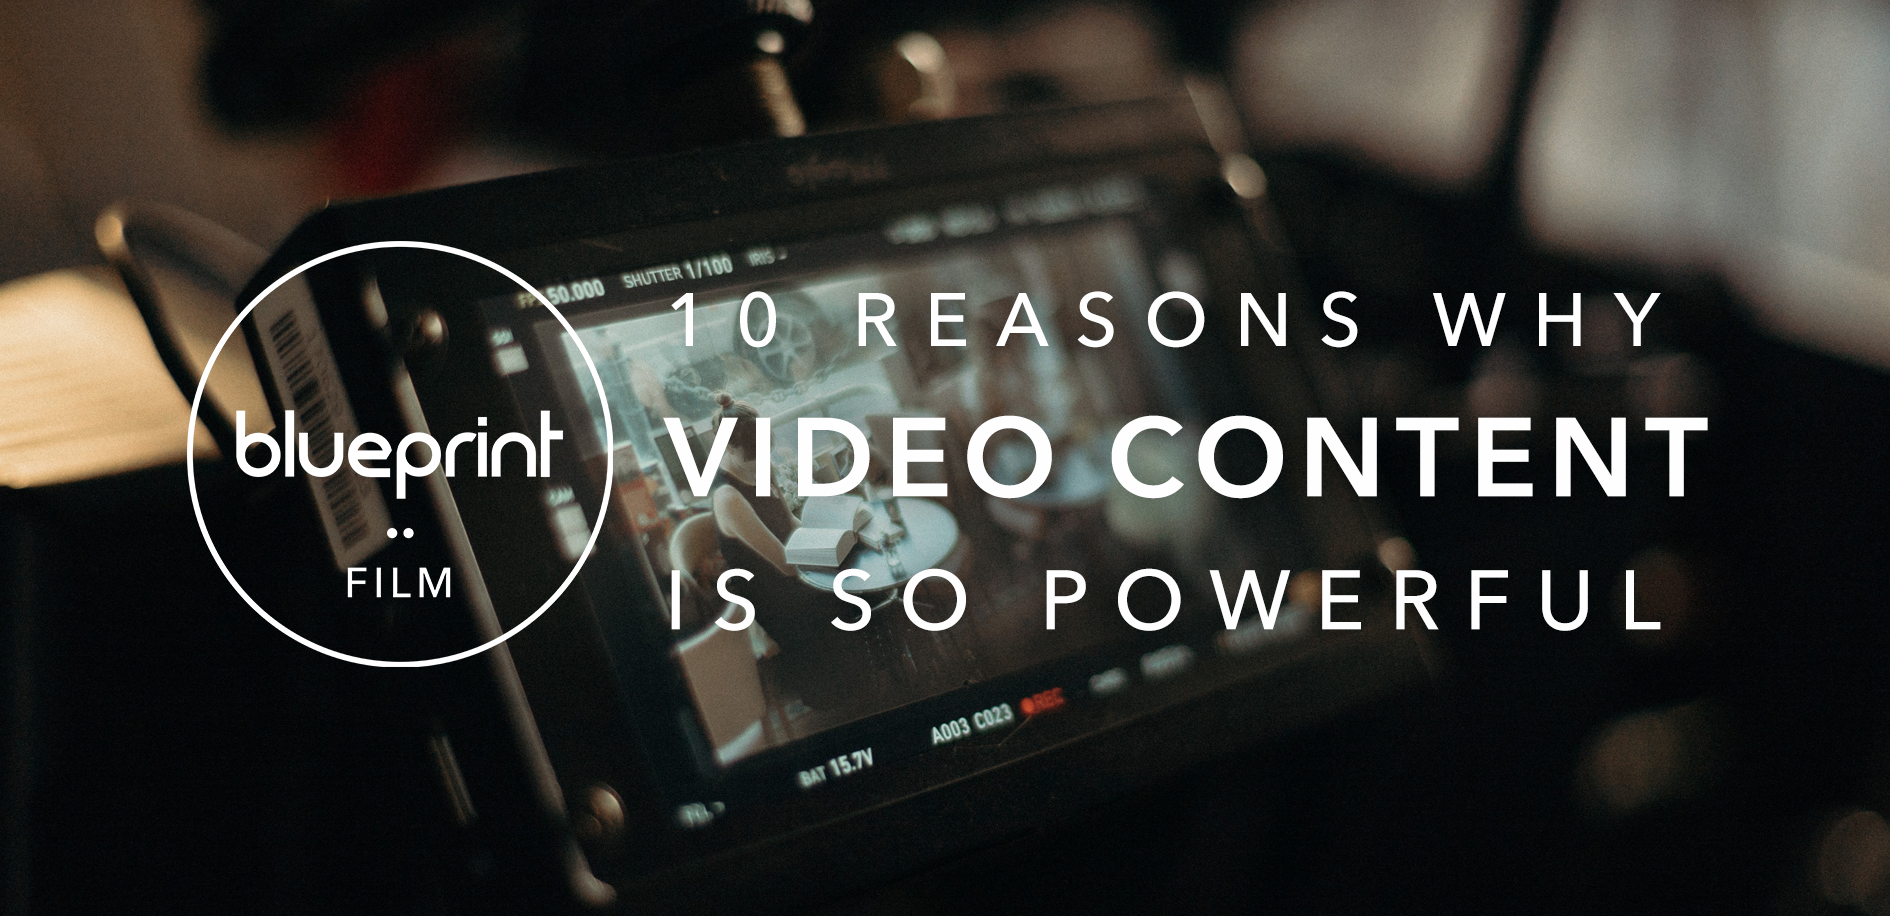 """Image of camera with text reading """"10 reasons why video content is so powerful"""""""